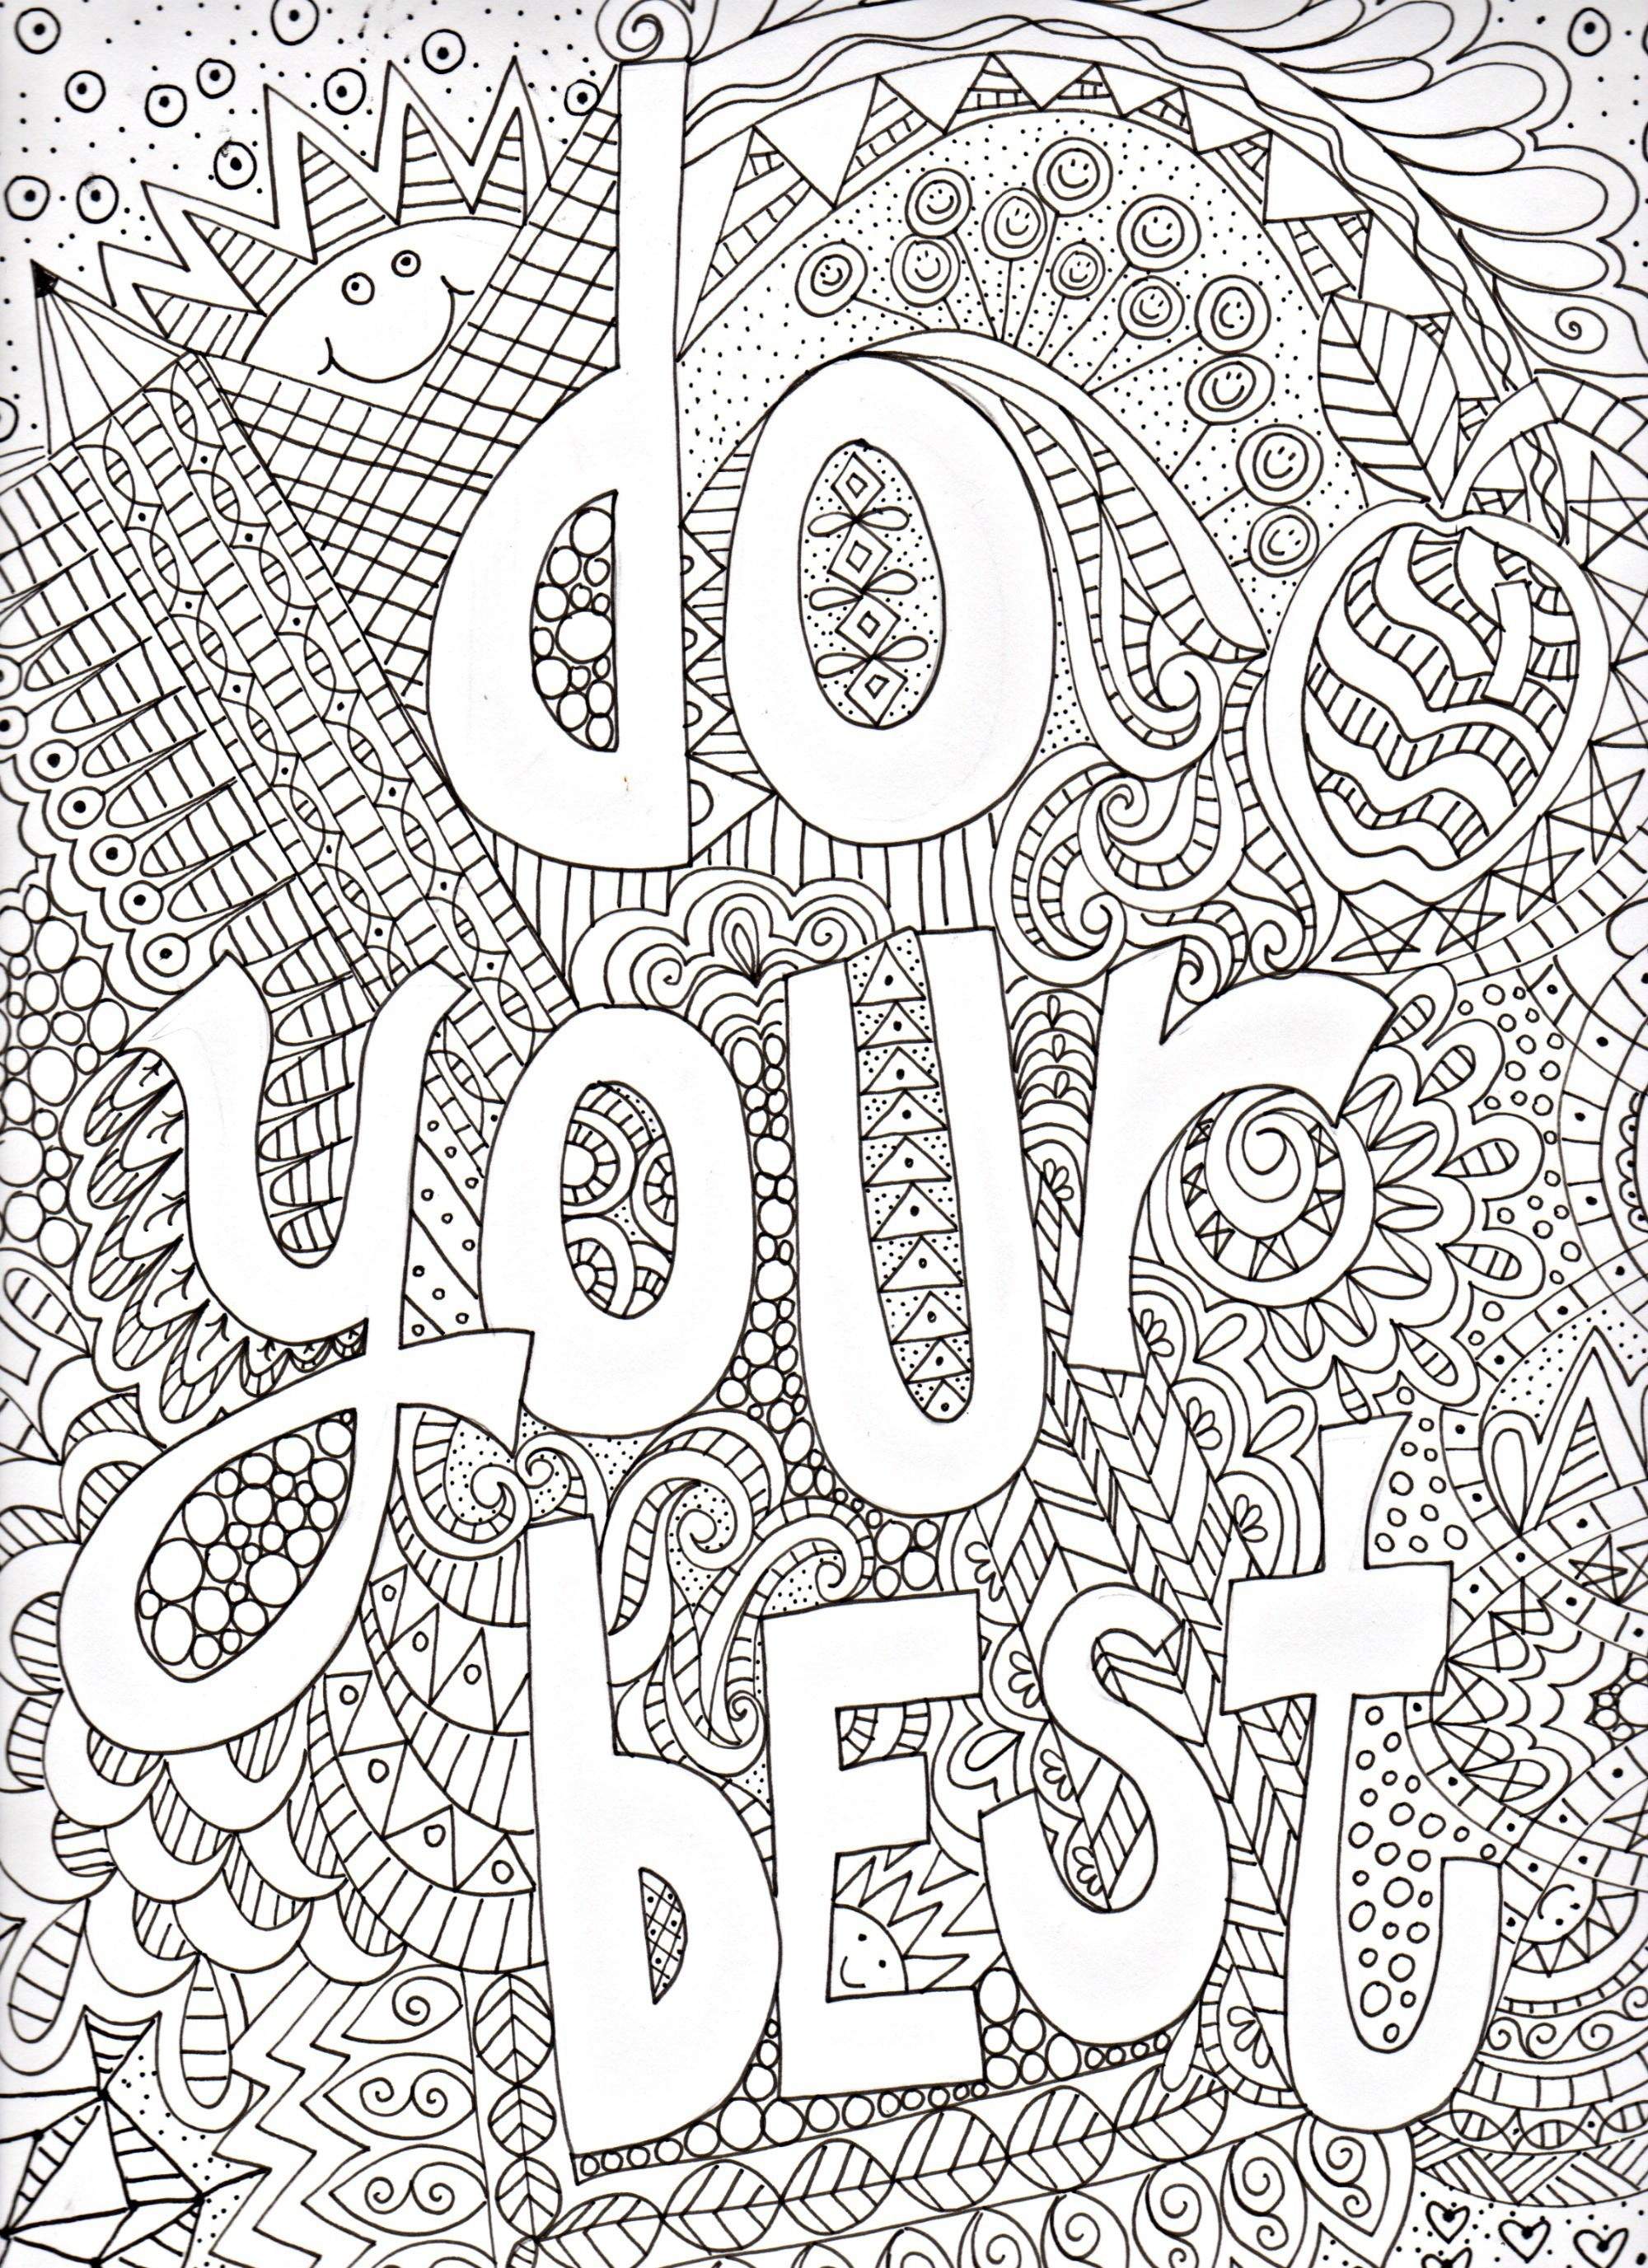 Quote Coloring Pages Bloodbrothers Printable Free Coloring Books Collection Of Fresh Inspirational Coloring Pages for Adults Line and Studynow to Print